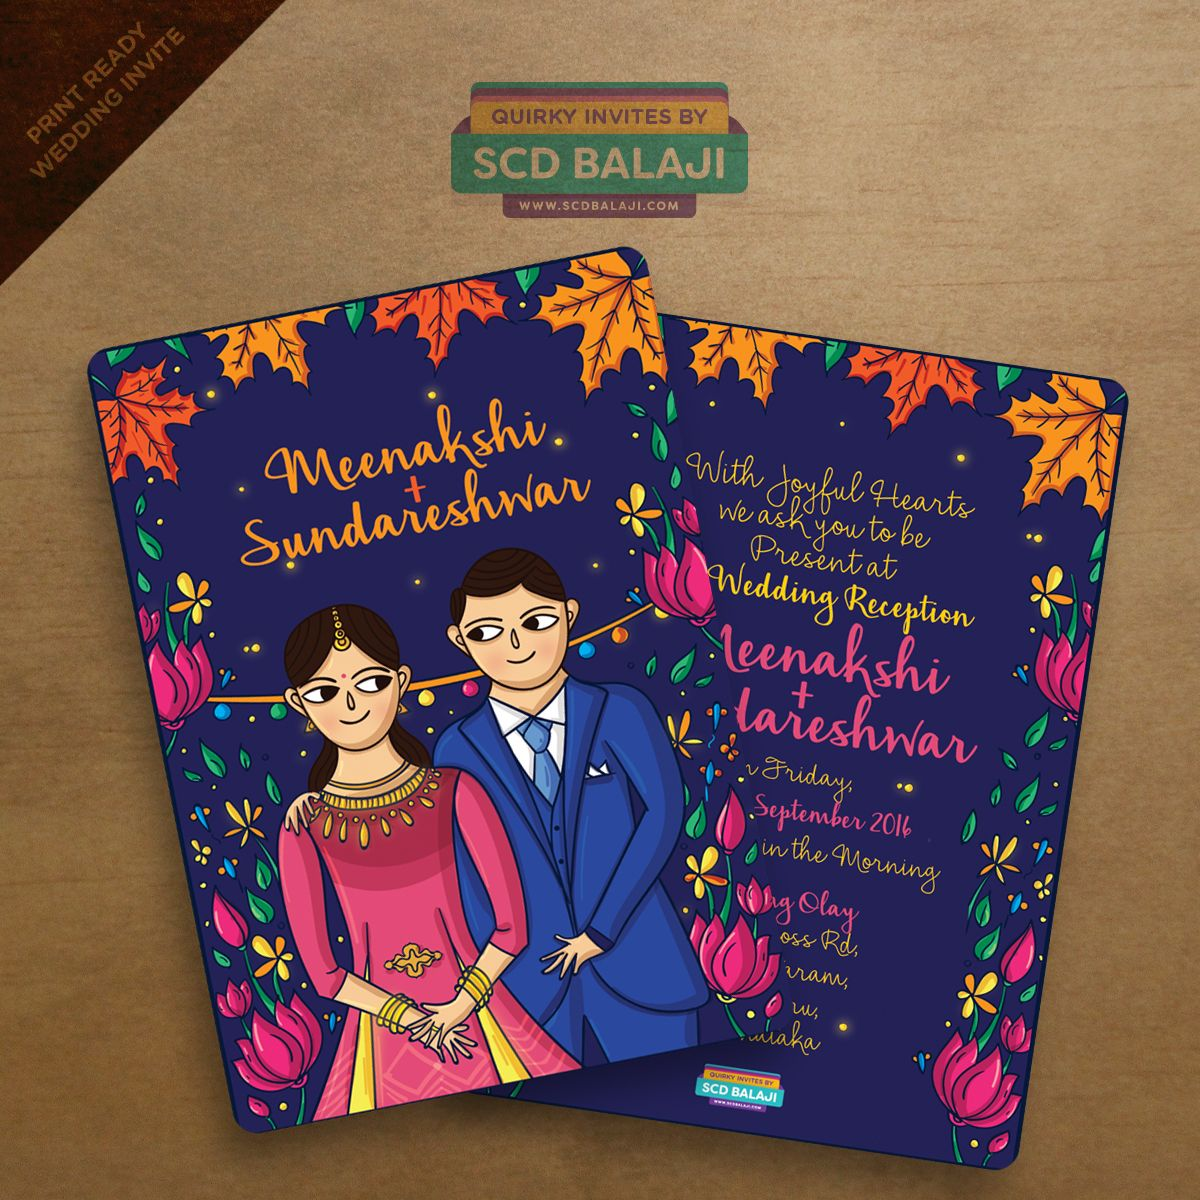 Indian Wedding Reception Invitation Card Illustration and Design